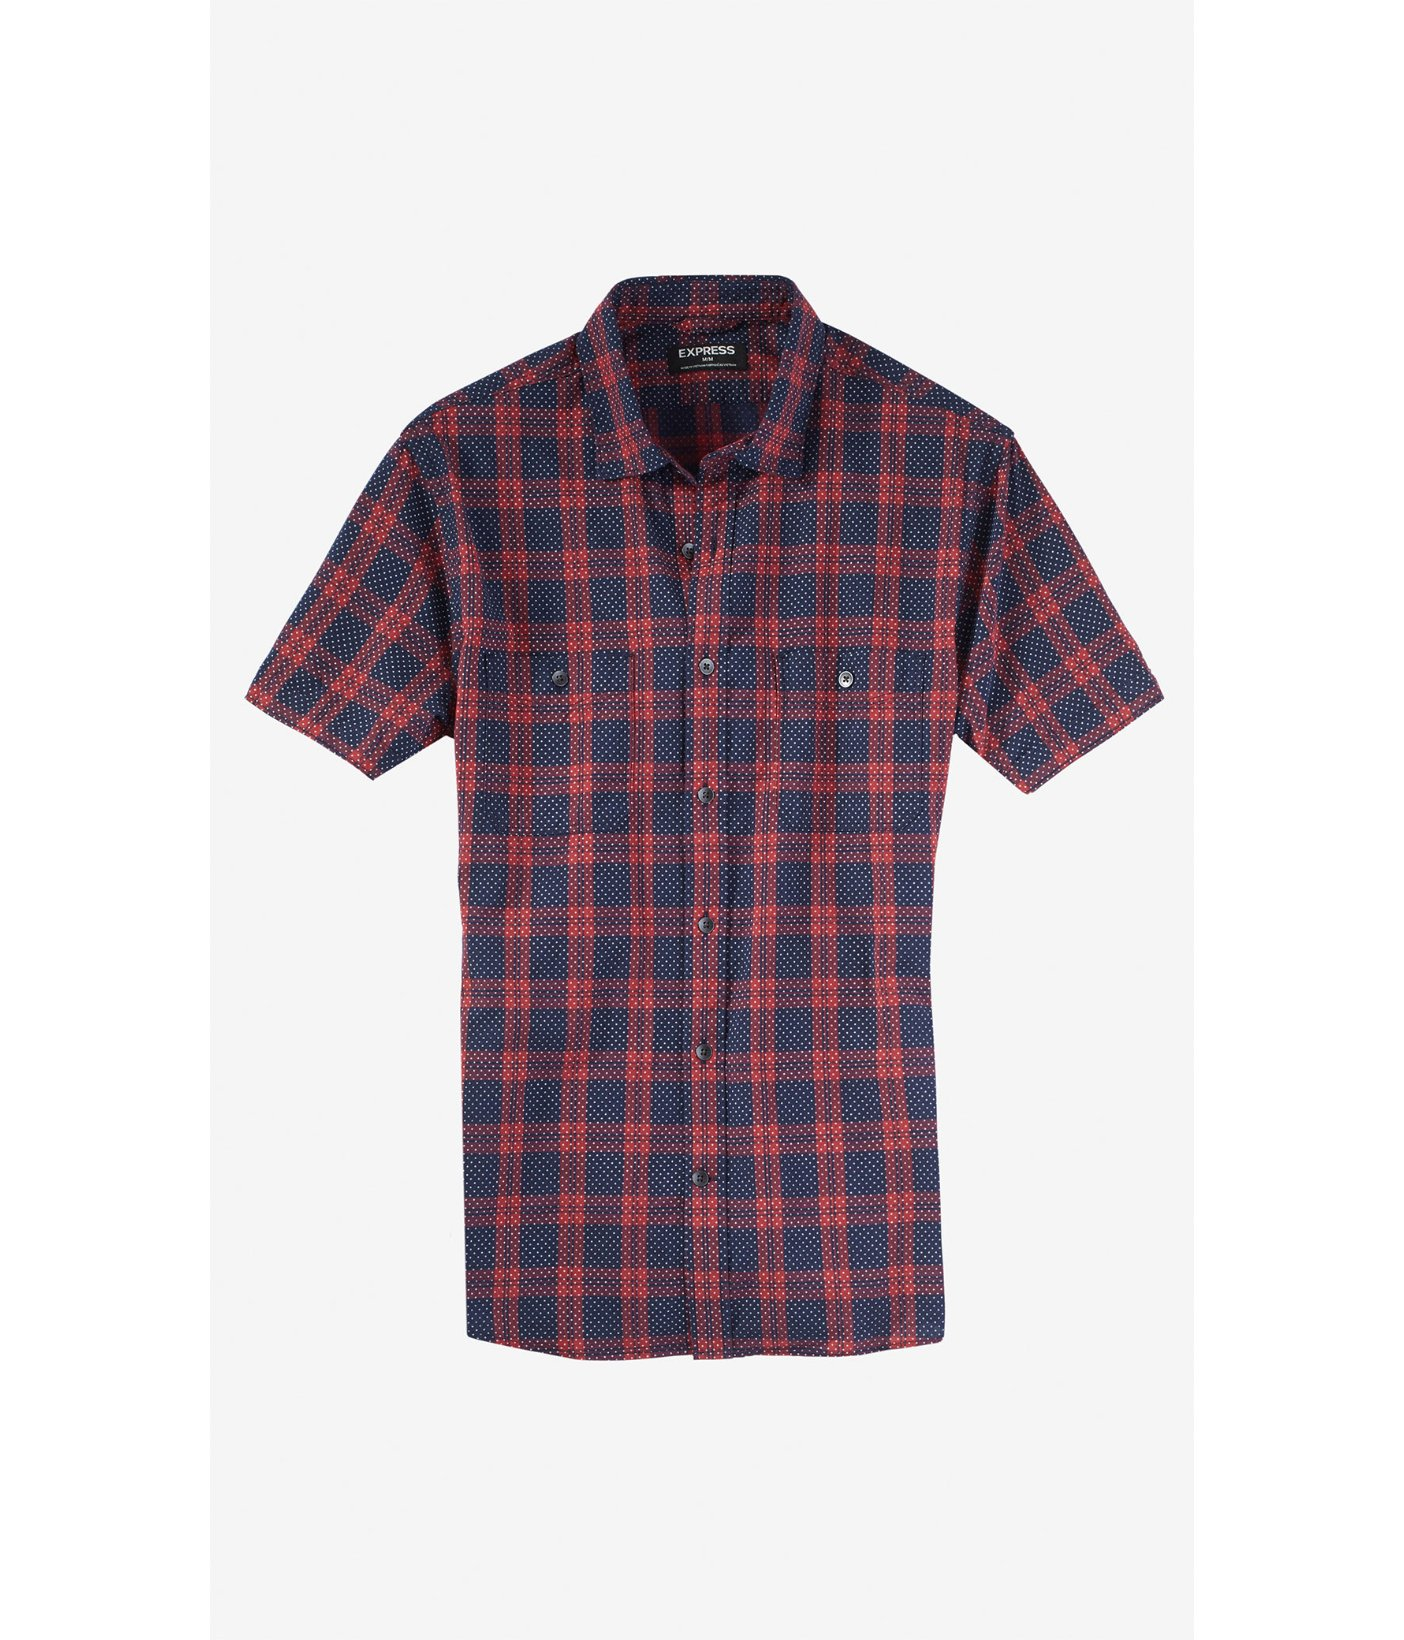 Express plaid dot short sleeve shirt in red for men Short sleeve plaid shirts